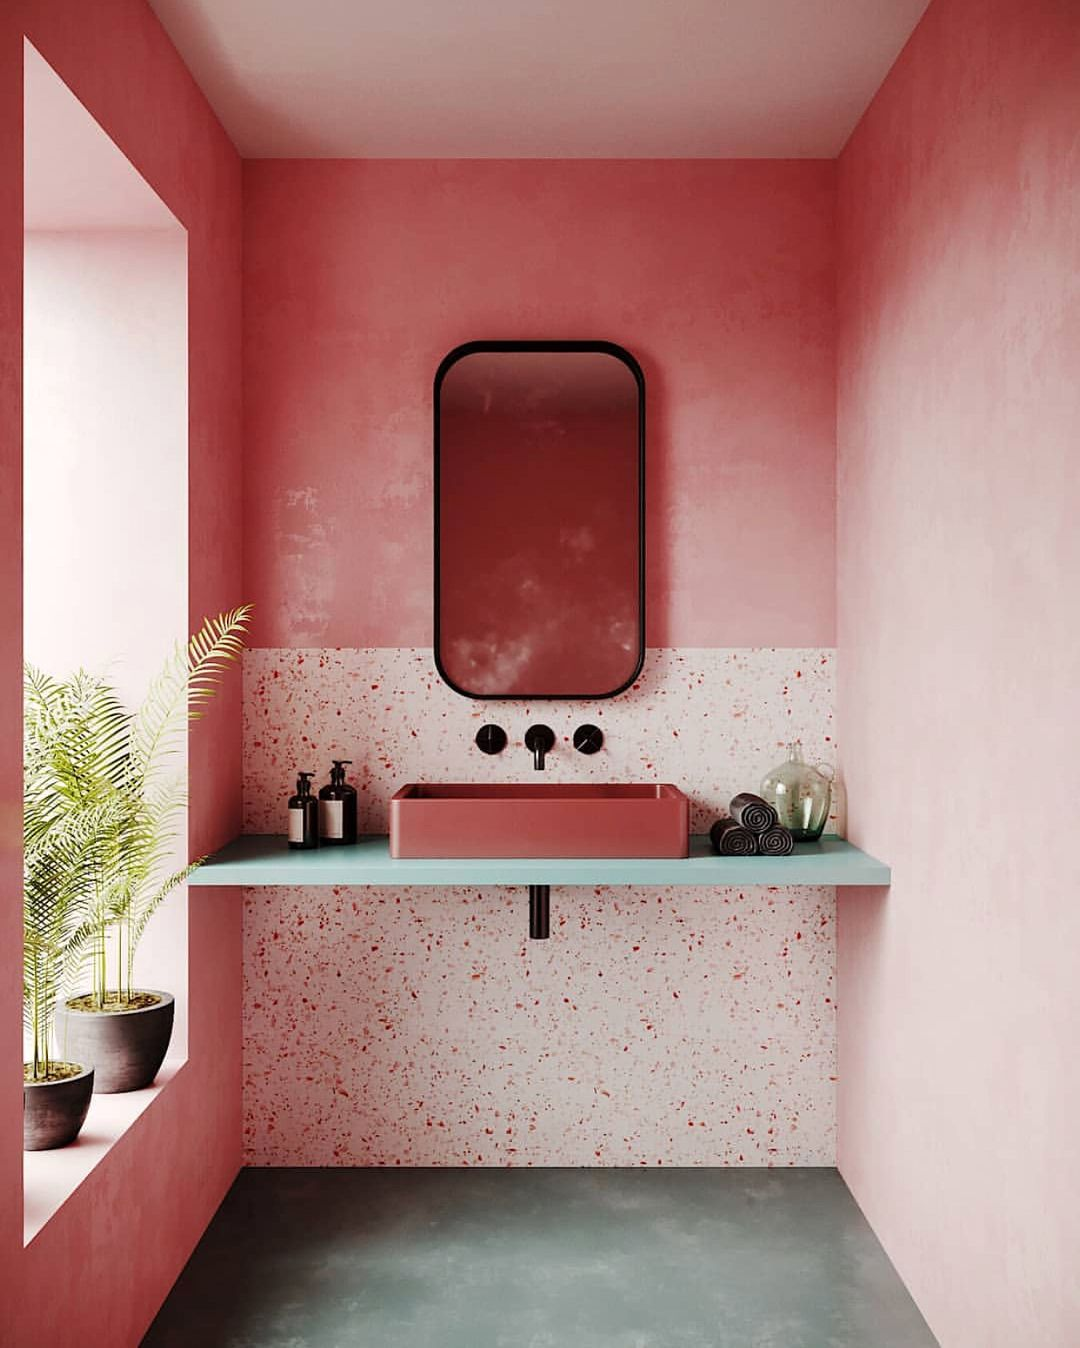 P O P Of Colour Pink Terrazzo Concrete What S Not To Love Image Via Elledecoration N Bathroom Trends Bathroom Interior Bathroom Inspiration